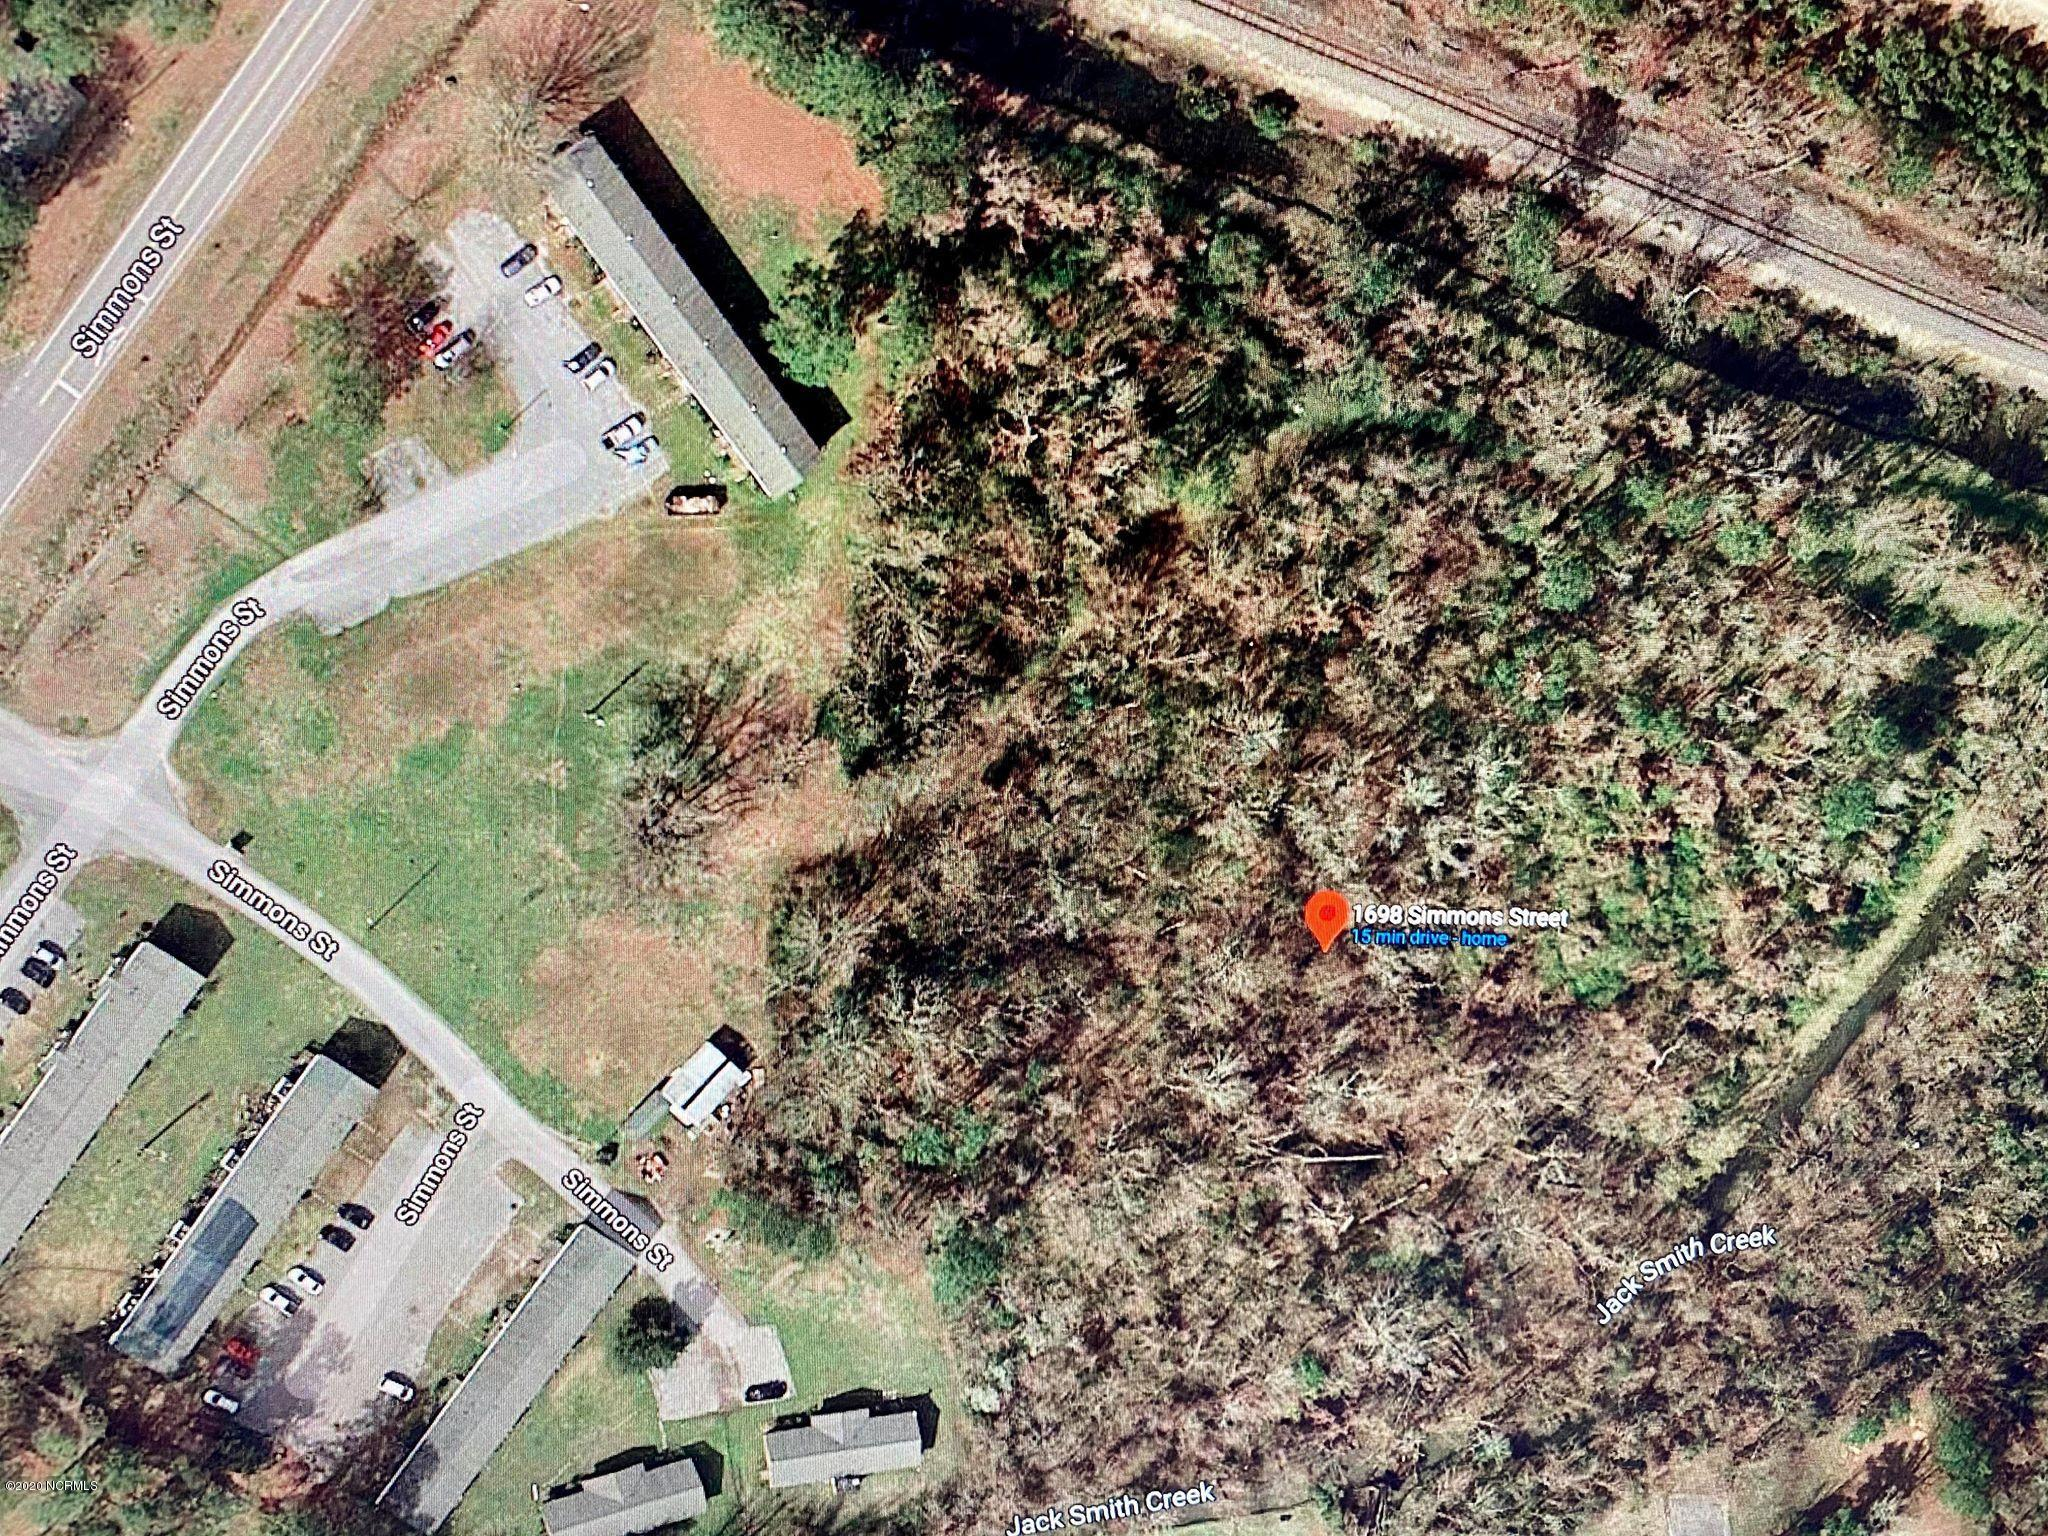 1698 Simmons Street, New Bern, North Carolina 28560, ,Undeveloped,For sale,Simmons,100229954